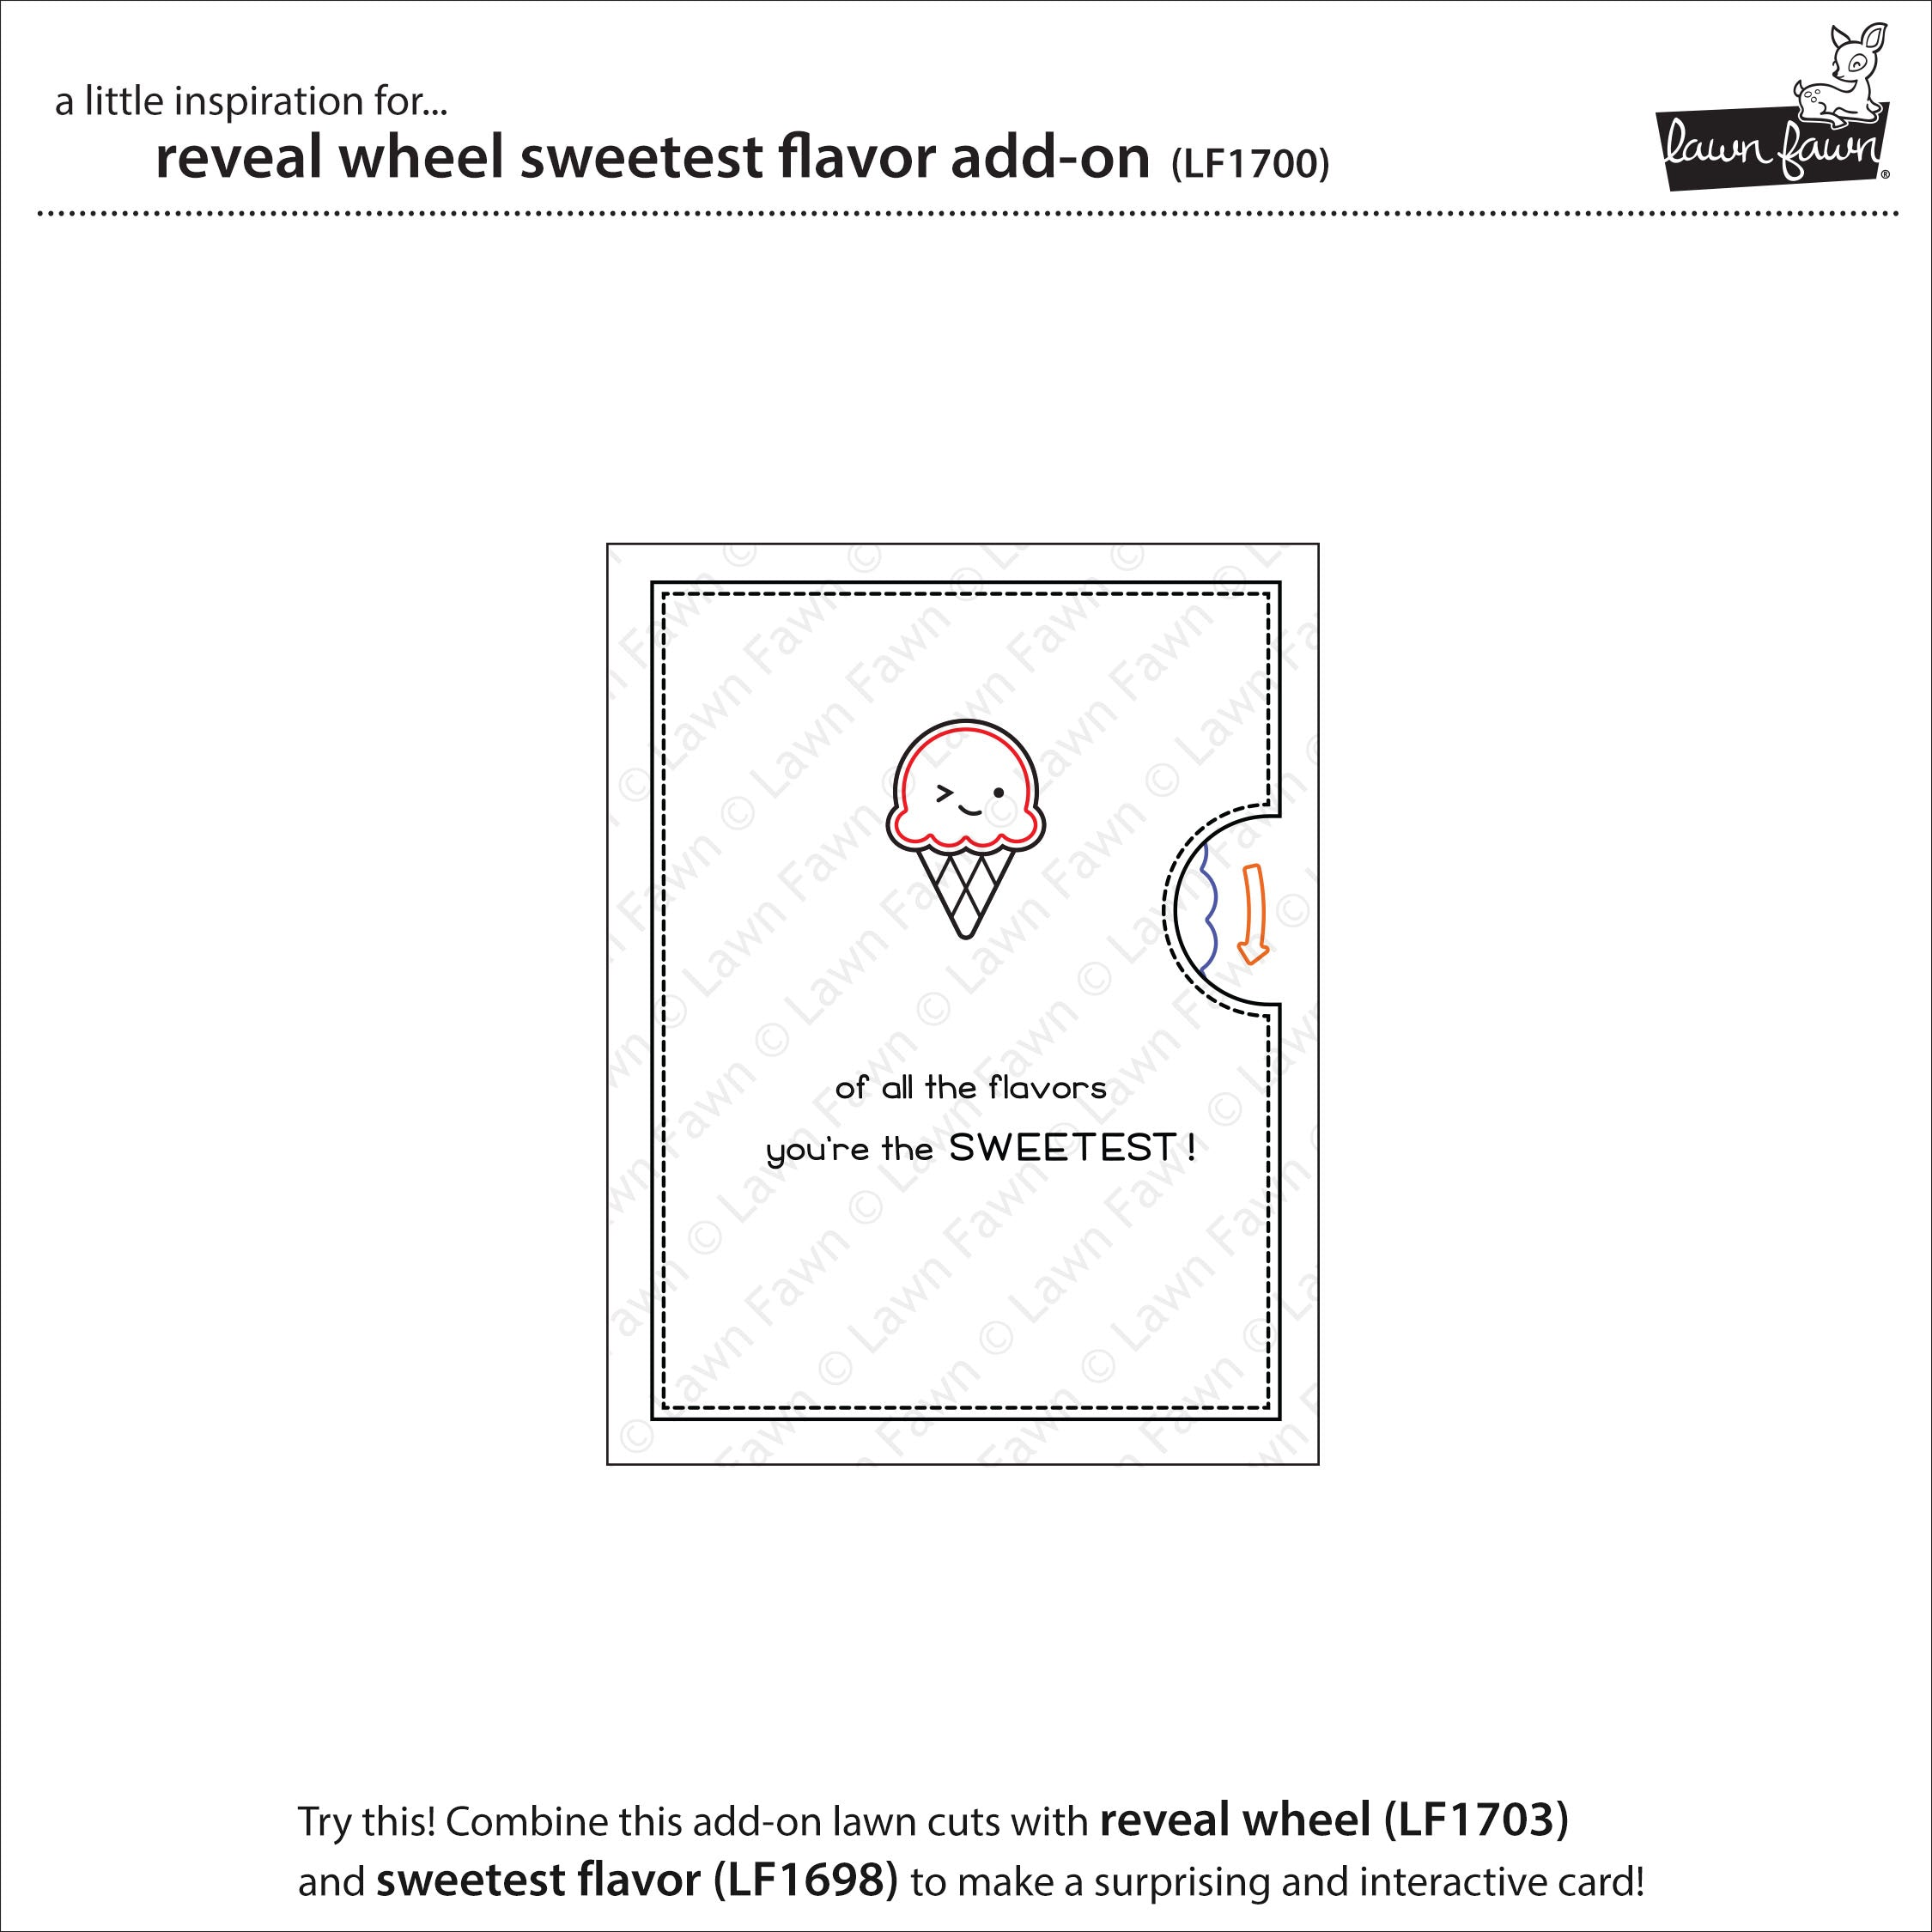 reveal wheel sweetest flavor add-on